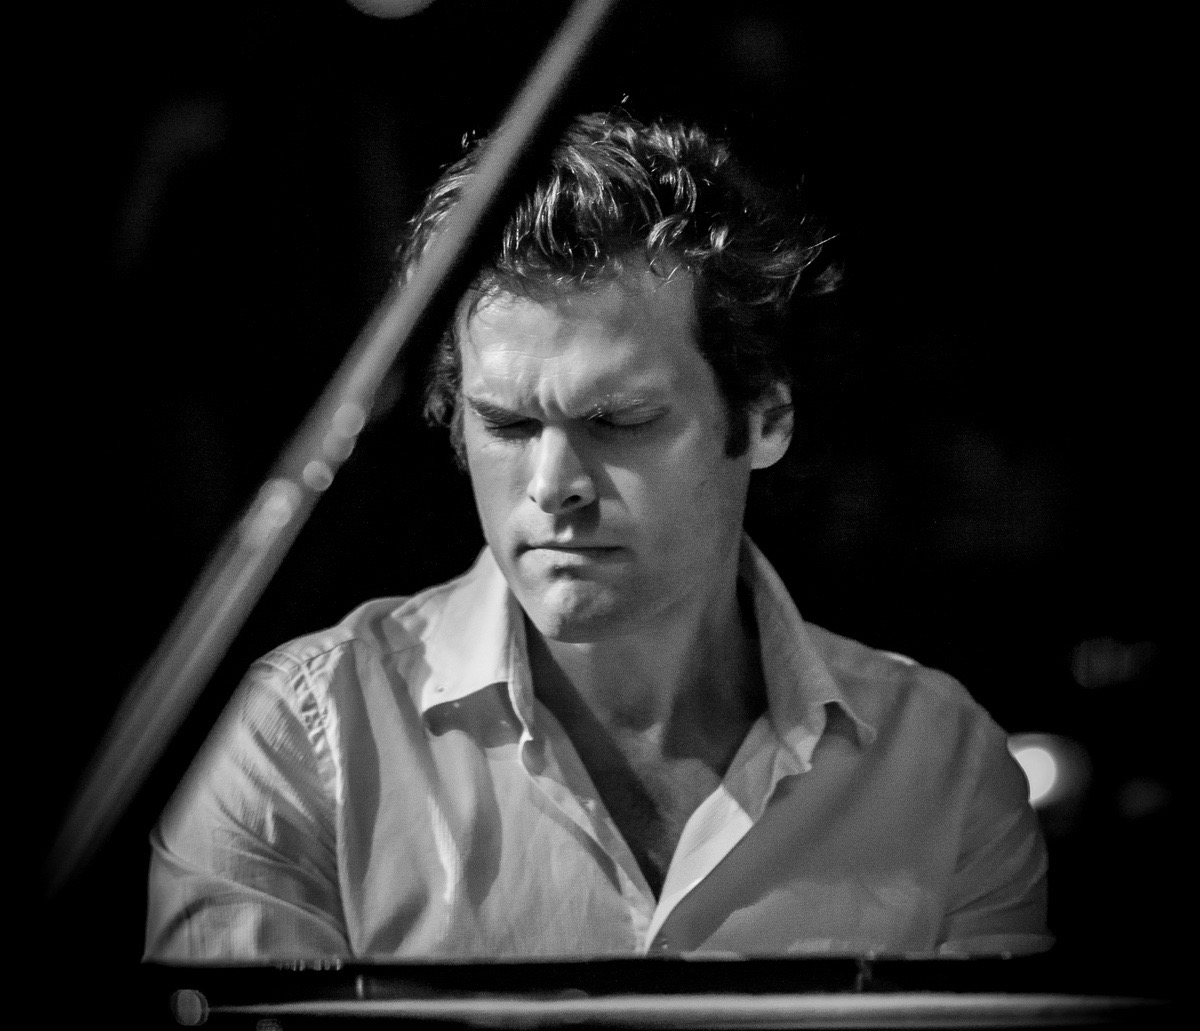 Andrew McCormack at Ronnie Scott's, International Piano Trio Festival, 2015. Photographer: Carl Hyde